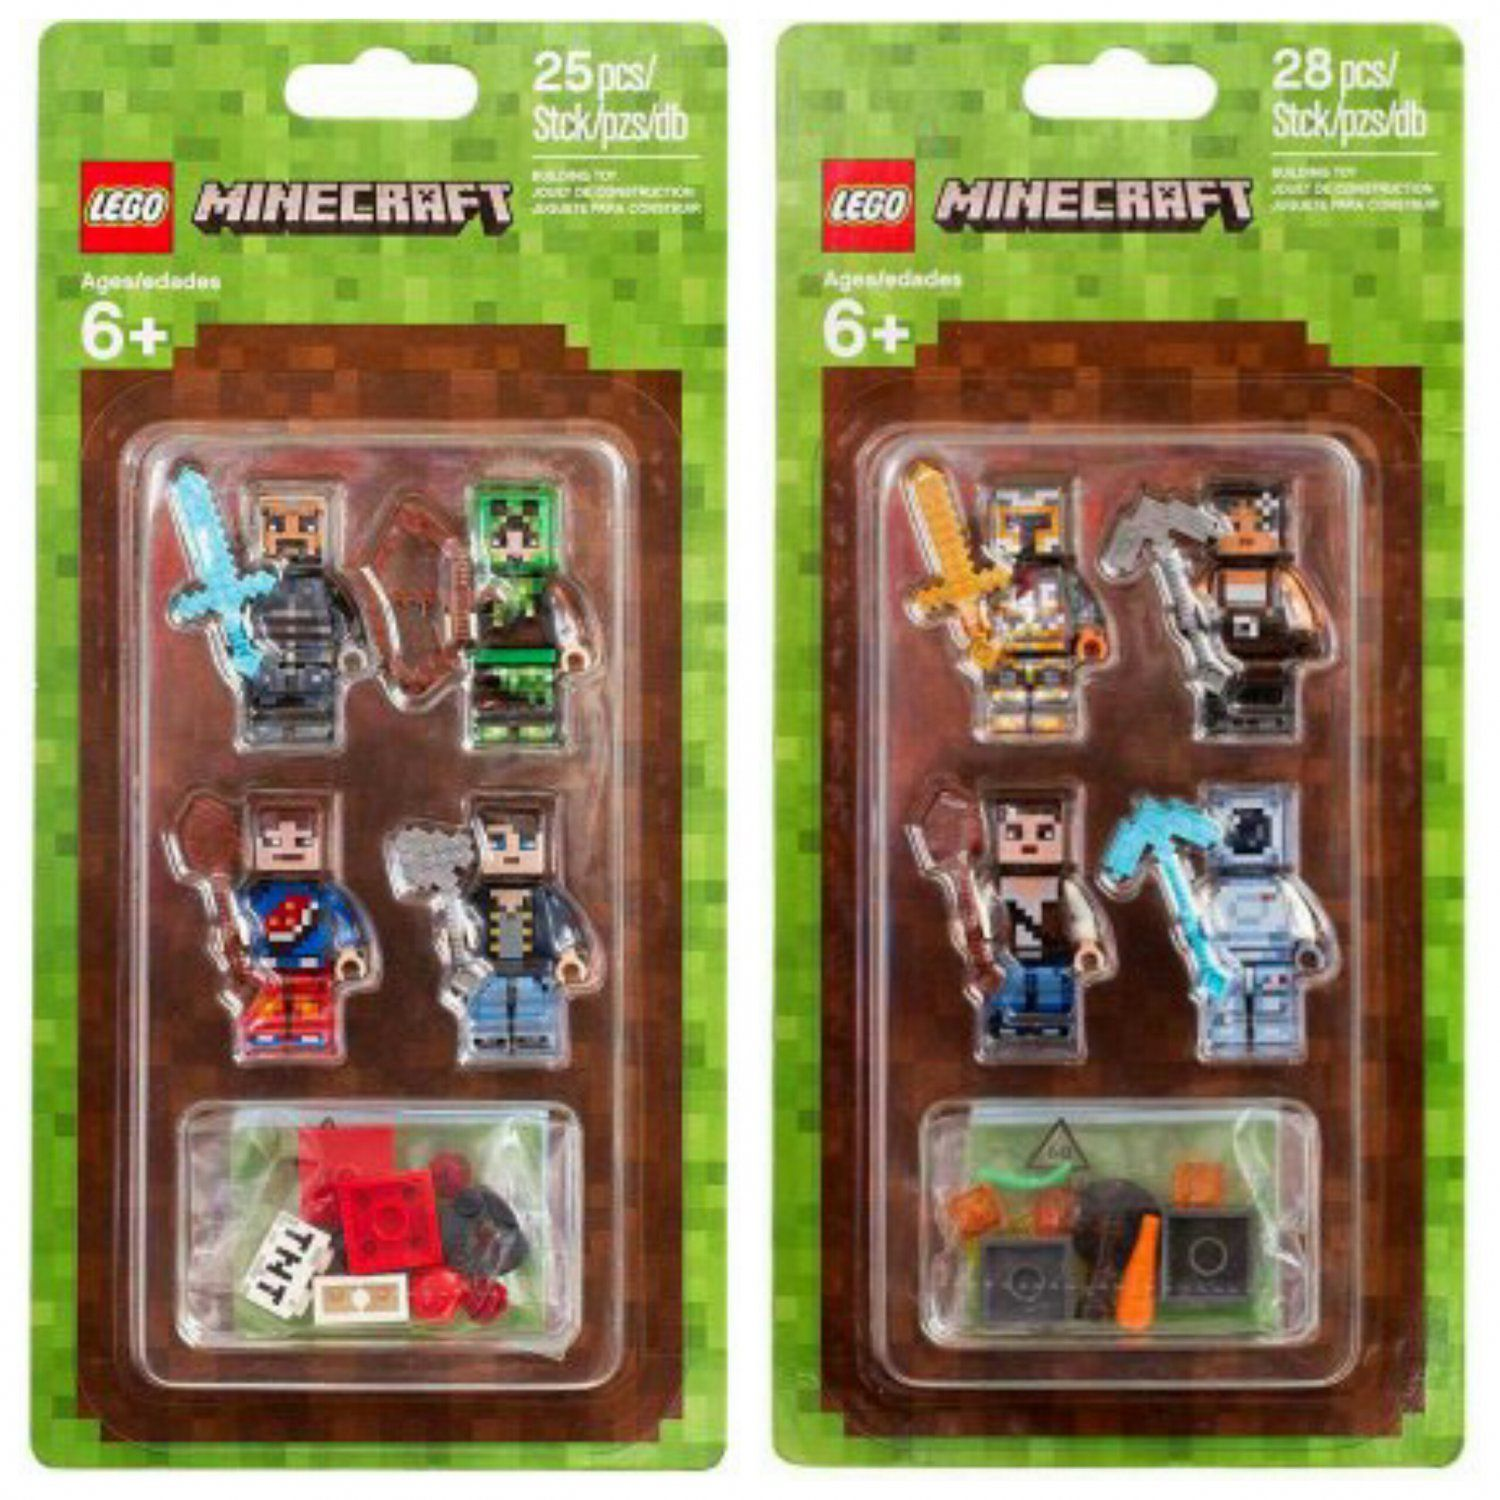 LEGO MINECRAFT SKIN PACK 1 853609 NEW//BOXED//SEALED